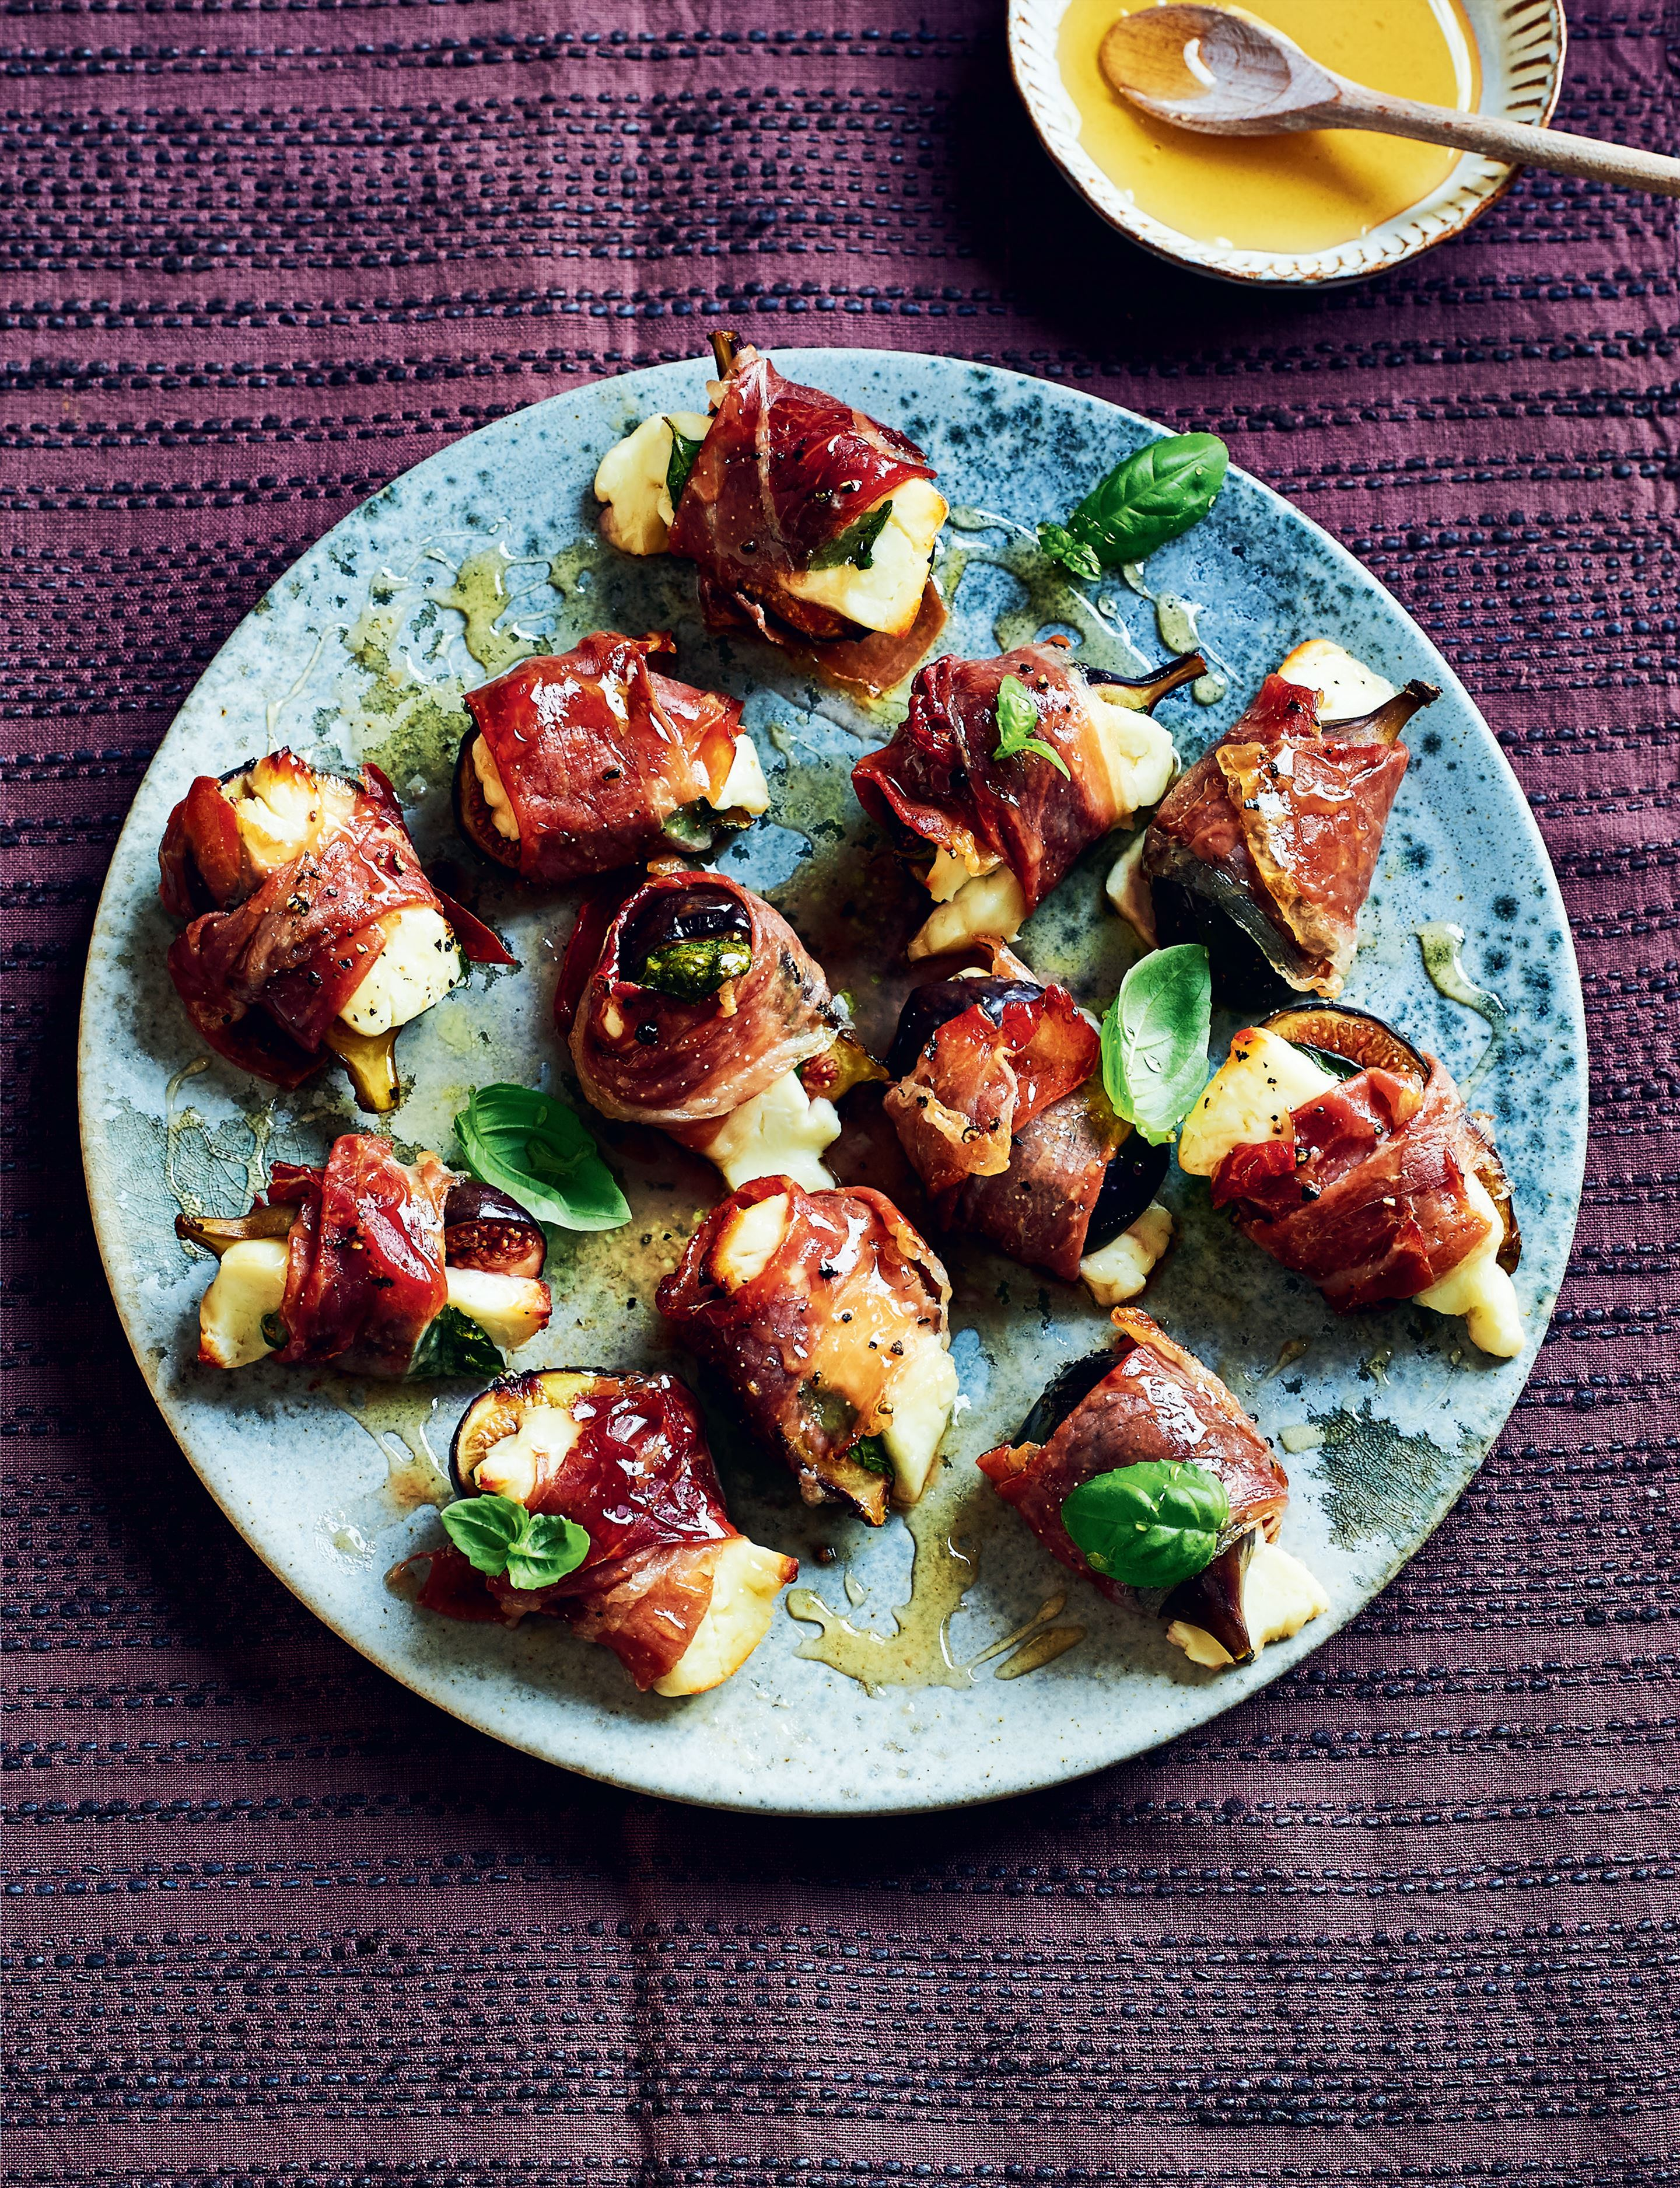 Baked figs, halloumi, prosciutto and basil